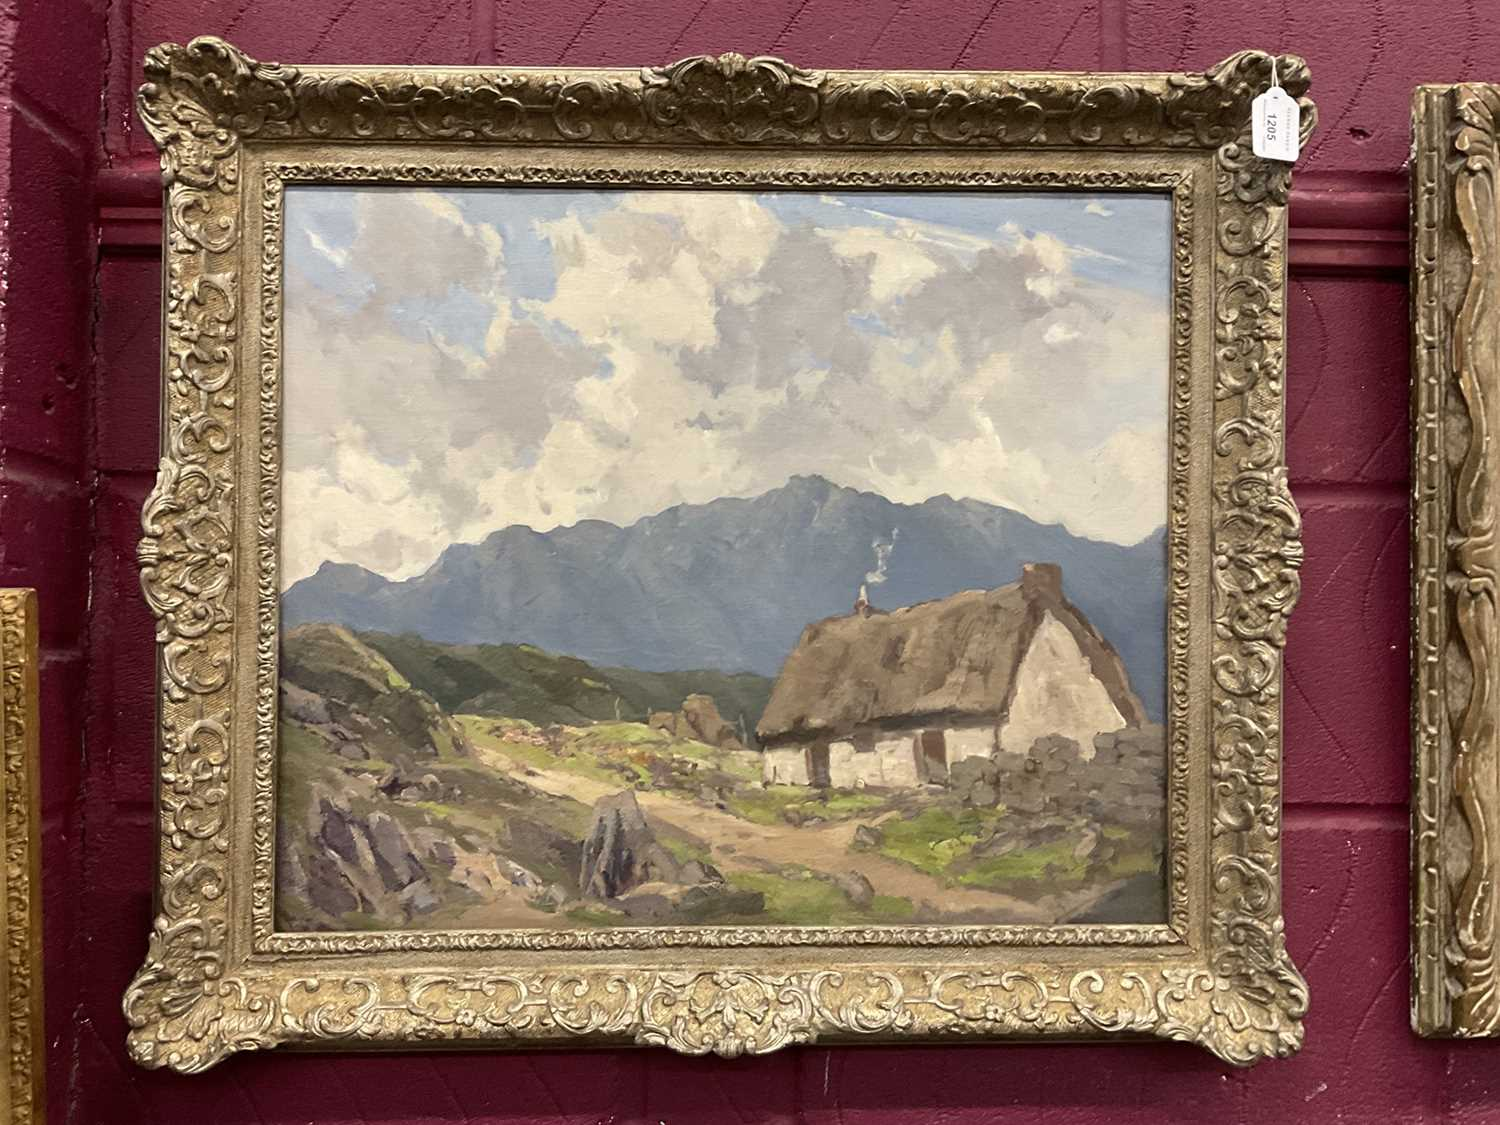 Lewis Taylor Gibb (1873-1945) oil on canvas - Crofters Cottage, 50cm x 61cm, in silvered frame - Image 6 of 9